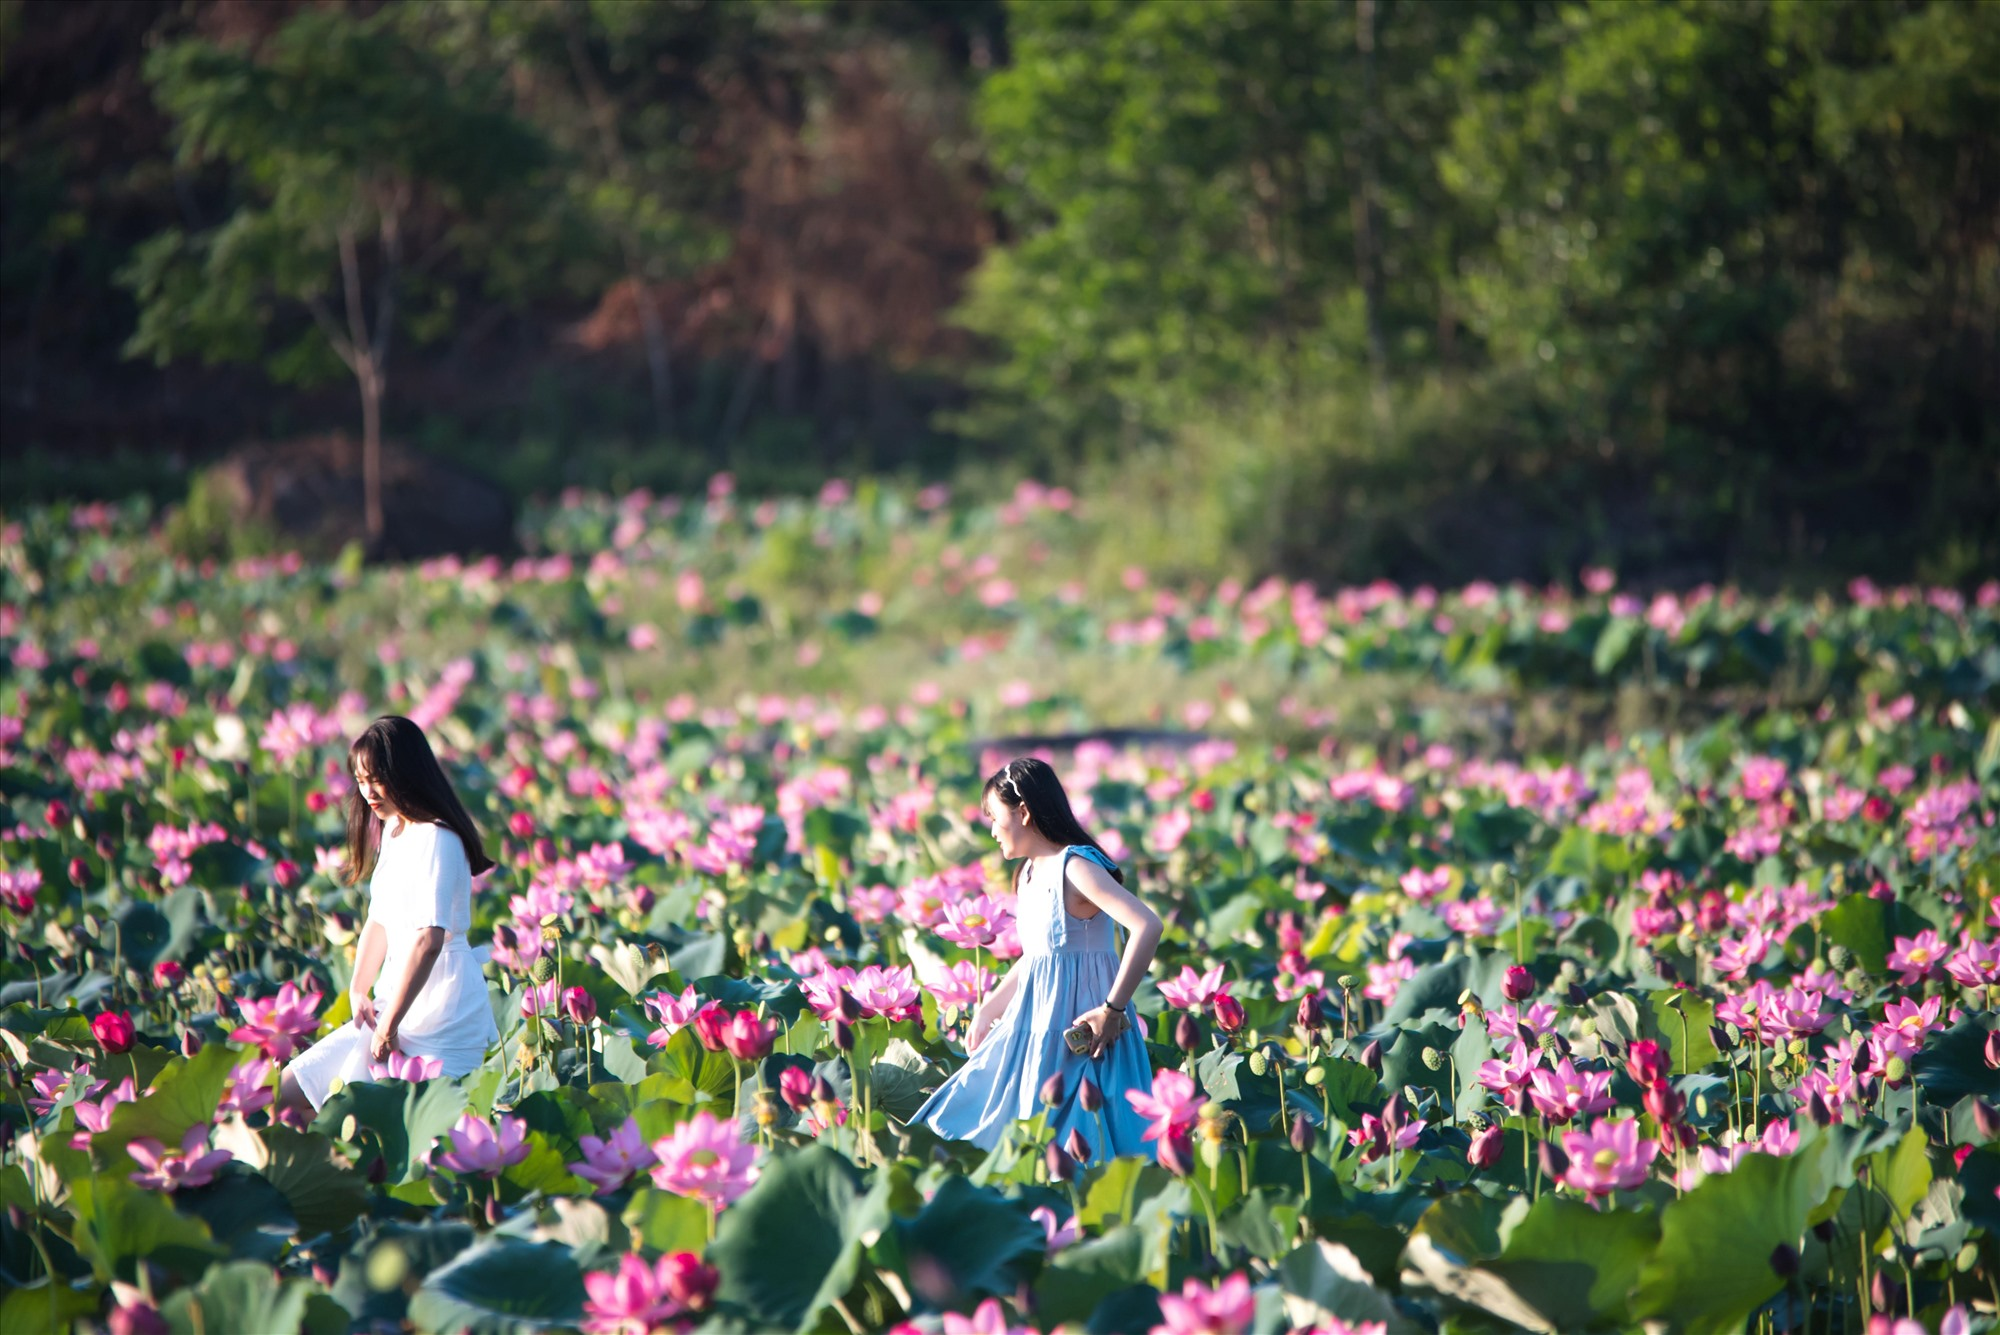 Visitors are very excited when coming to this lotus field.